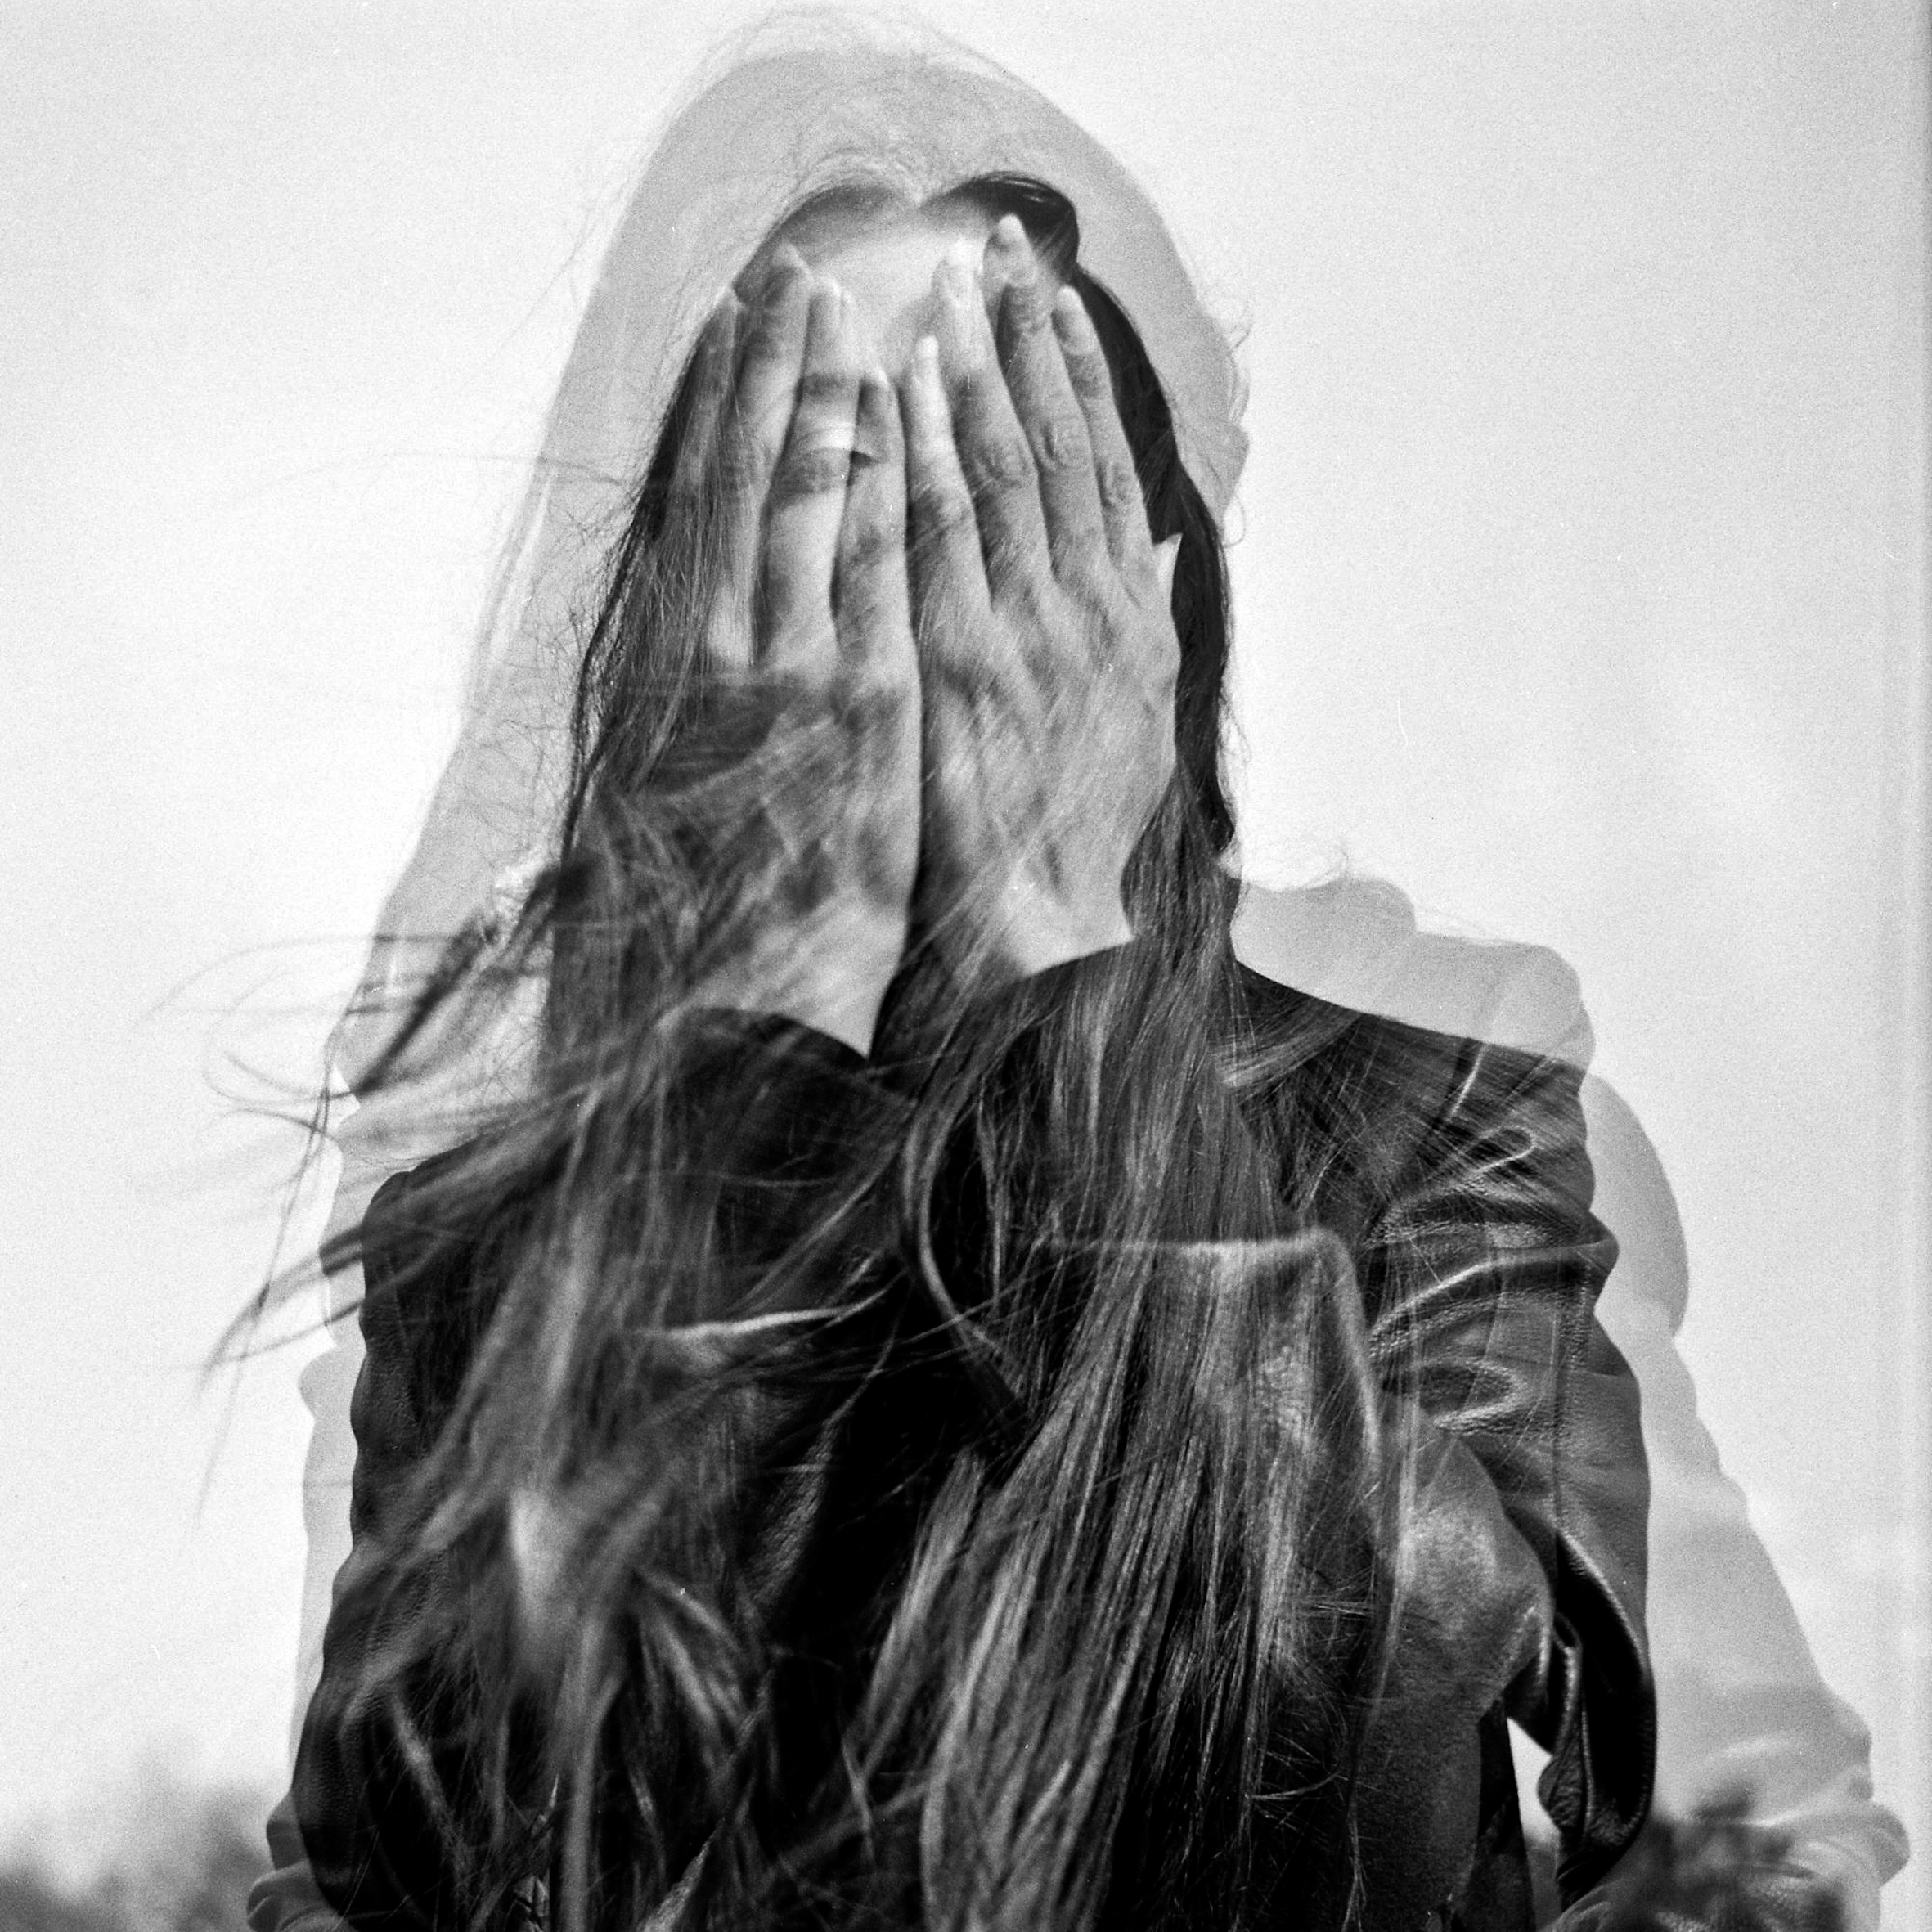 The prefect imperfect world | Lubitel 2 120 mm black and white film | Evelyne Dierikx